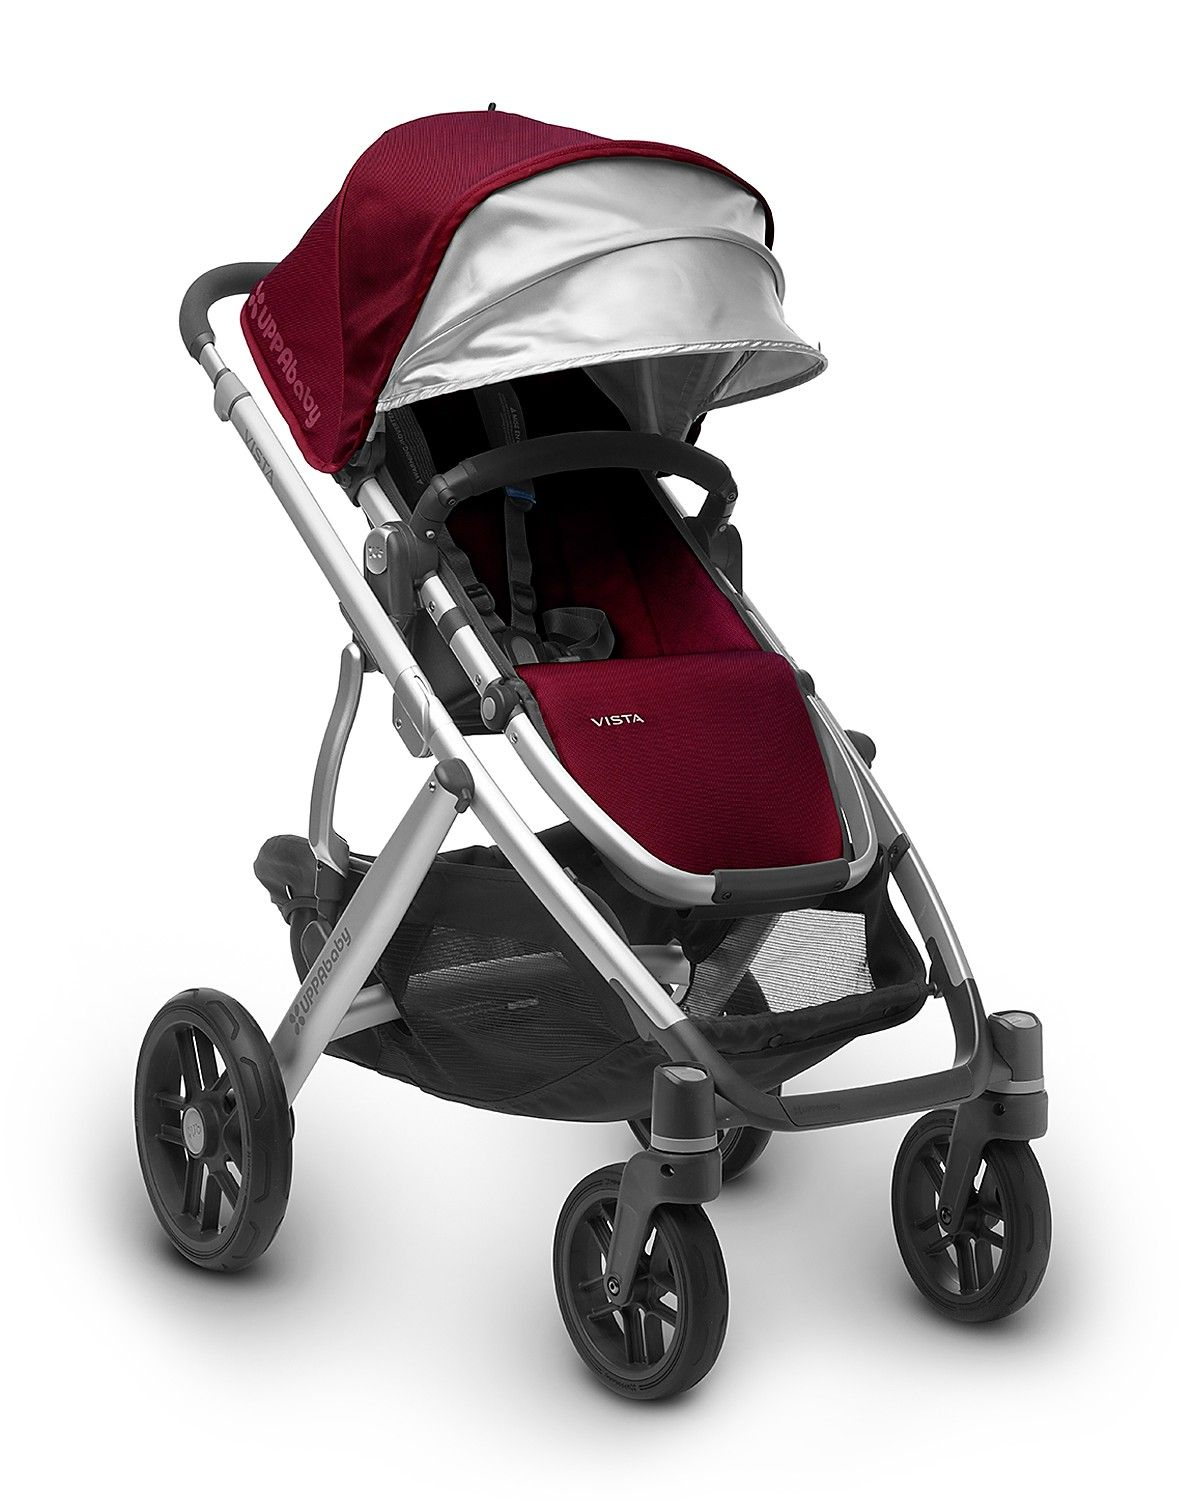 The 2017 UPPAbaby VISTA is narrower, lighter and includes